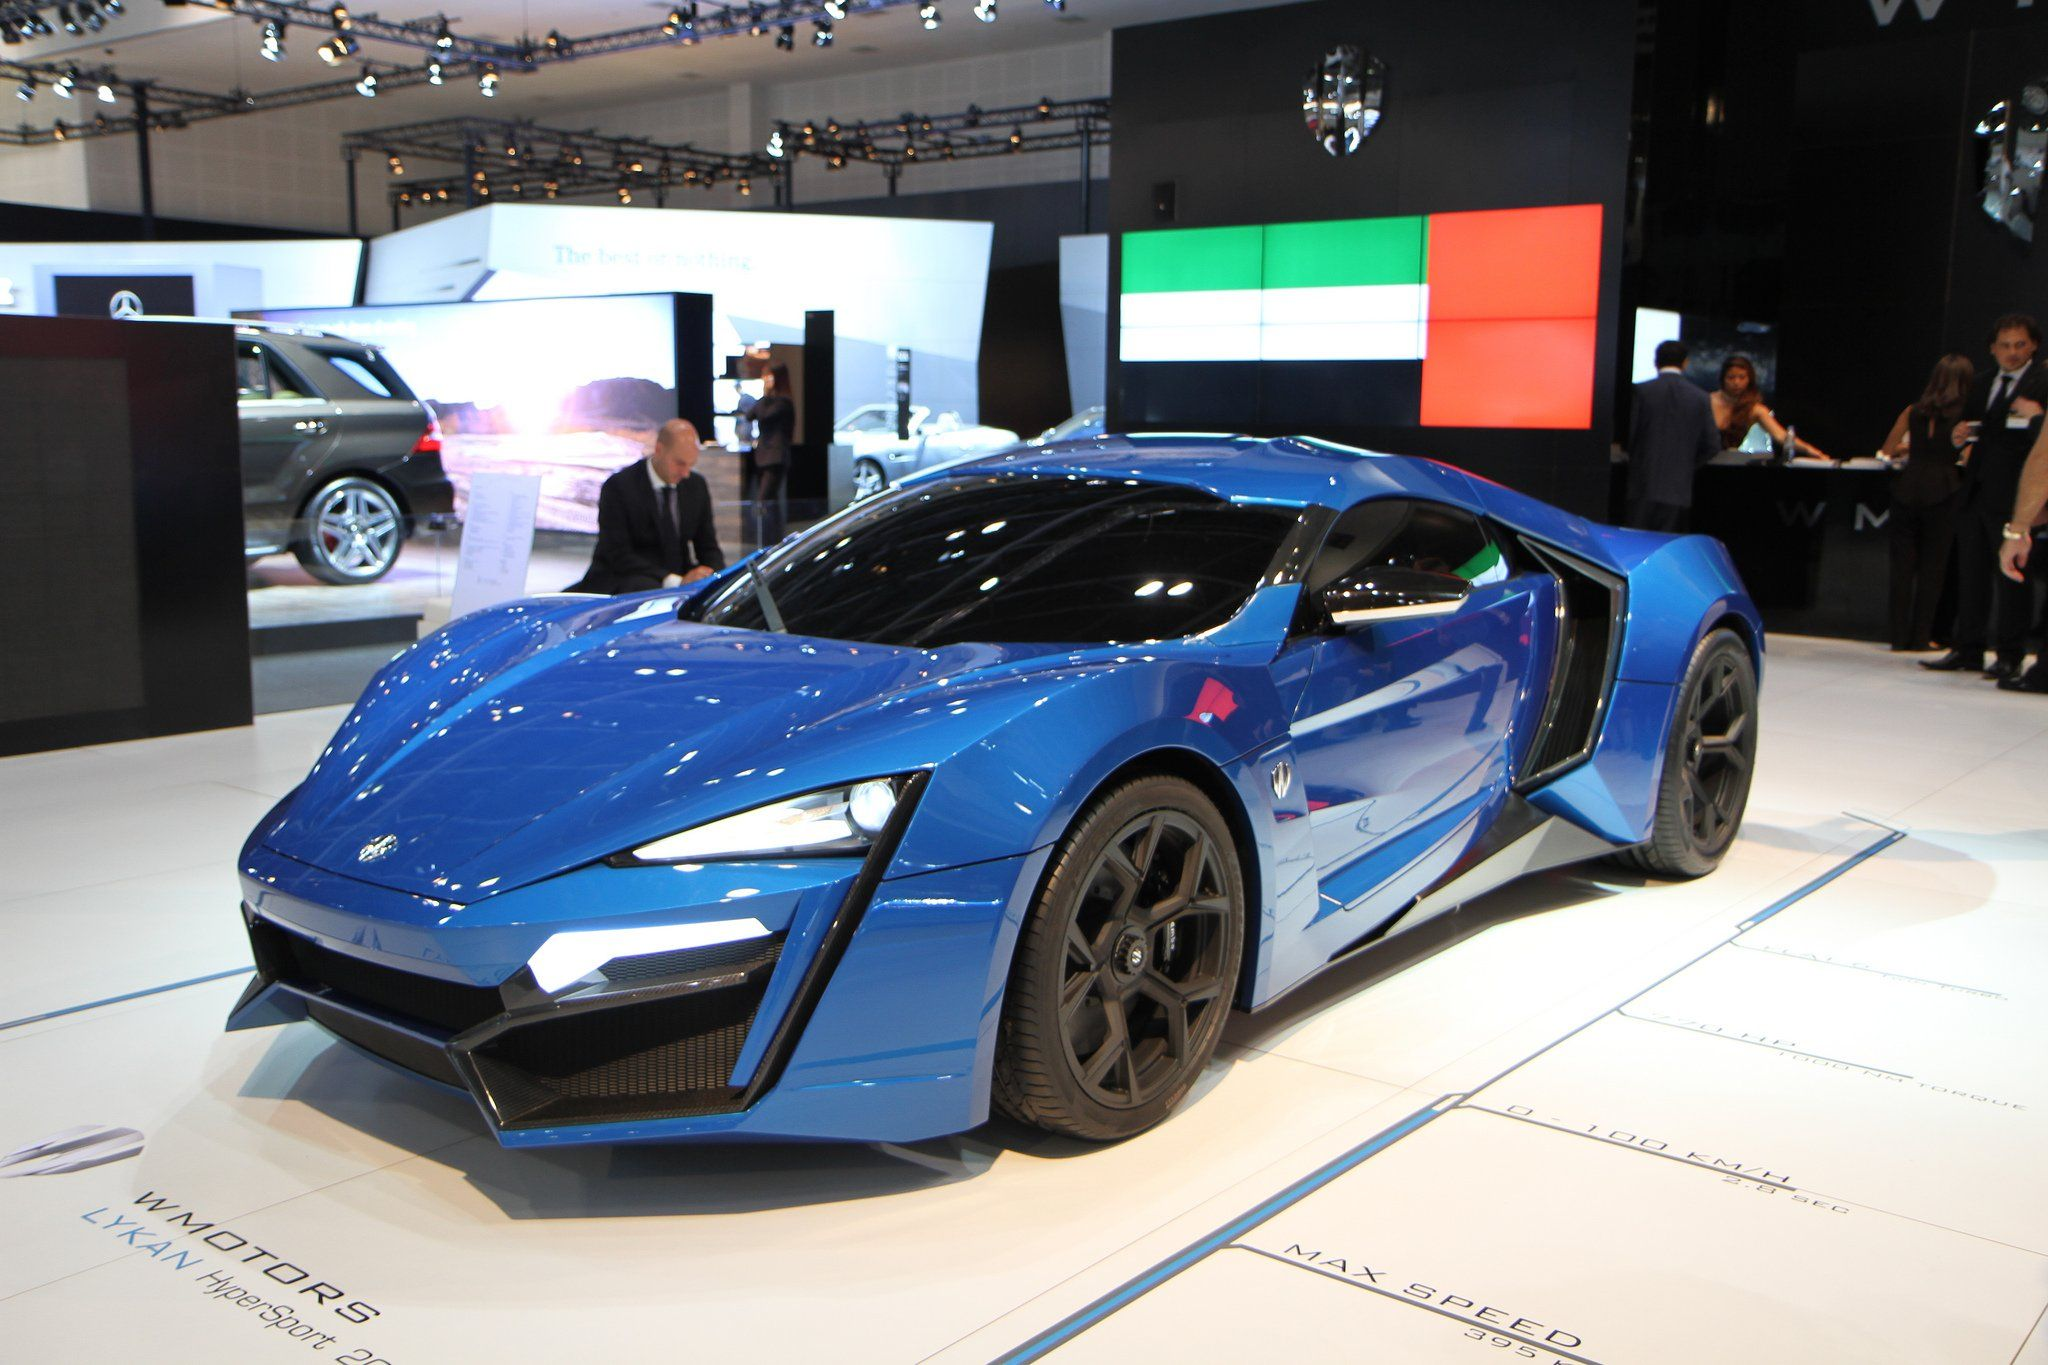 Blue Lykan Hypersport #2 | Dream Cars Wish List | Pinterest | Lykan ...